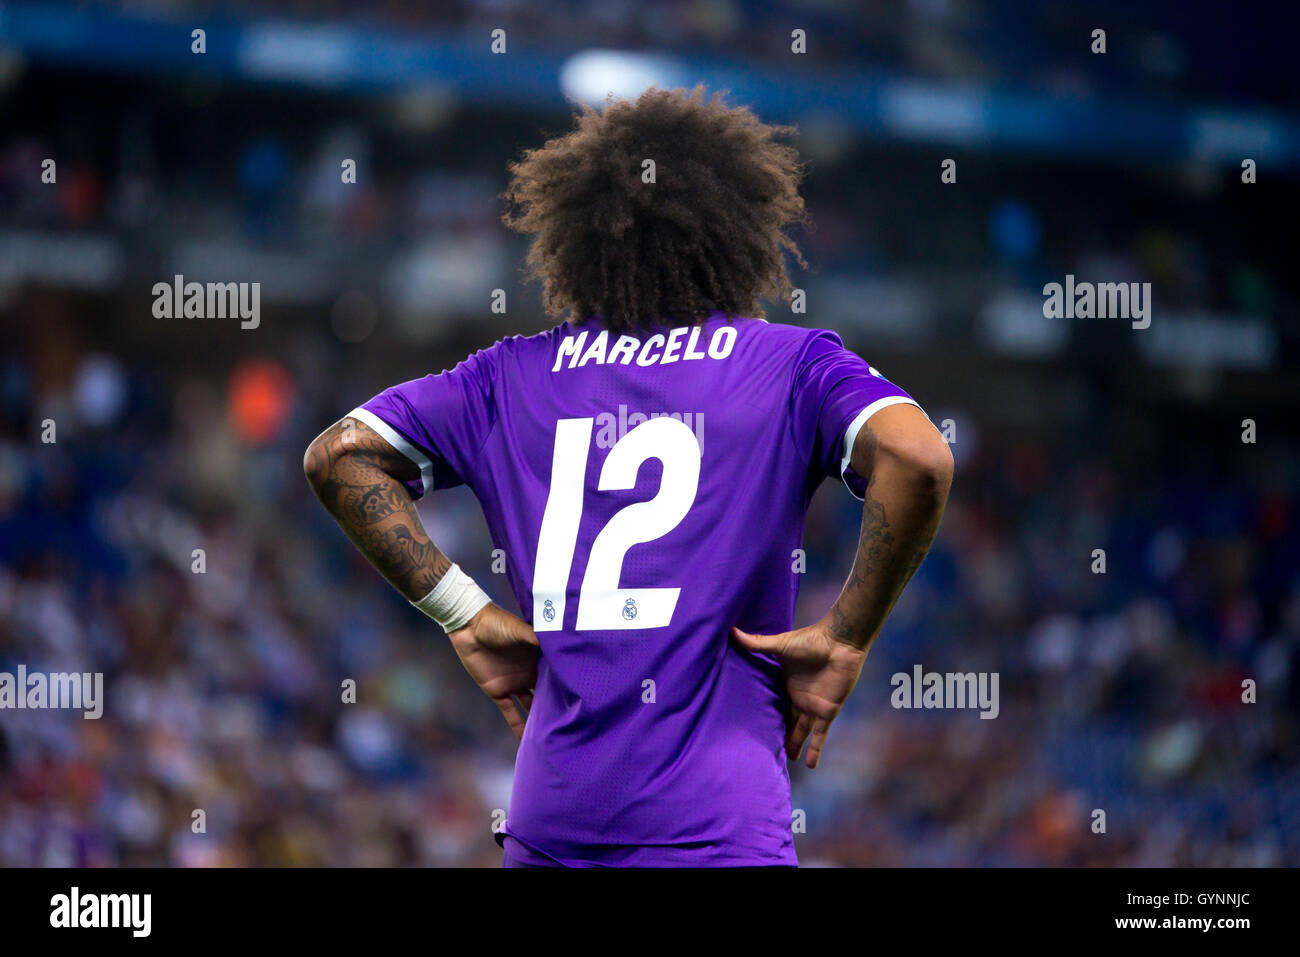 BARCELONA - SEP 18: Marcelo plays at the La Liga match between RCD Espanyol and Real Madrid CF at RCDE Stadium on - Stock Image